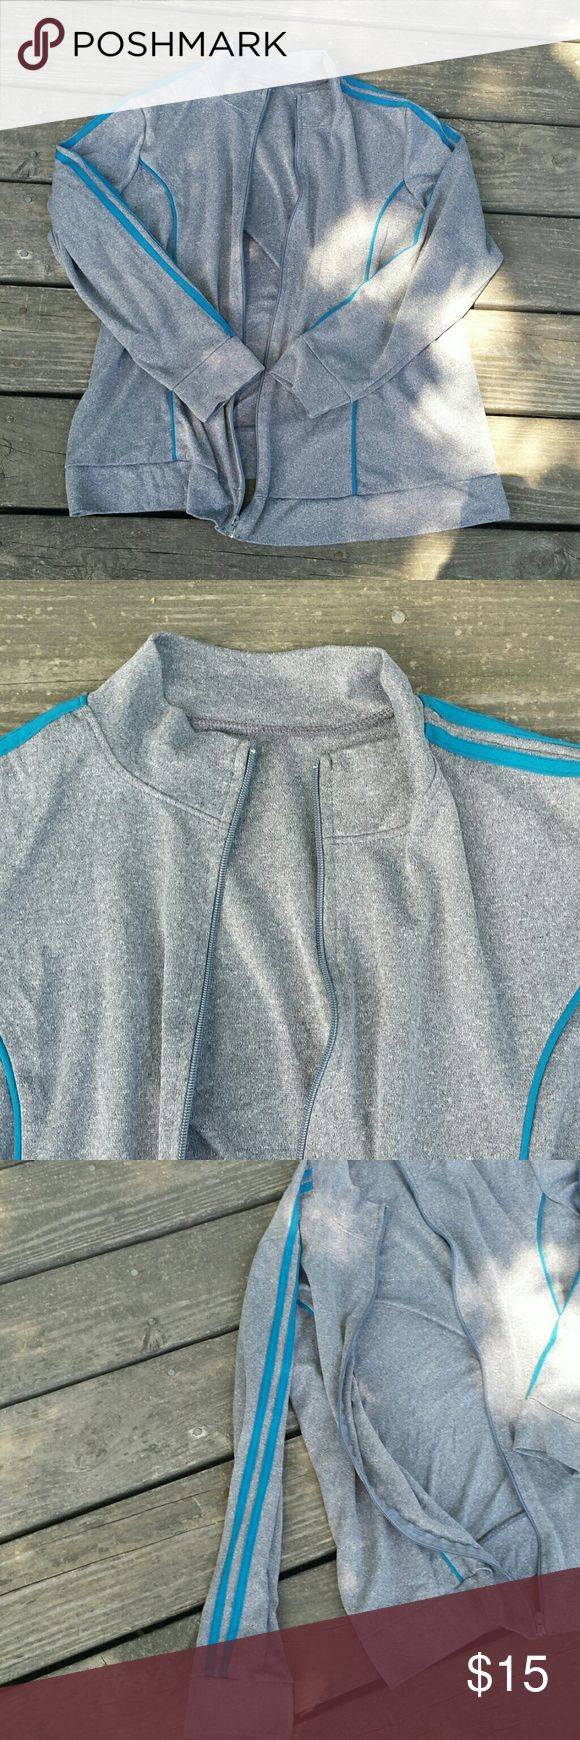 Women's gray athletic jacket Women's gray athletic jacket. Size large. Zipper in front thay goes all the way up and down. Jackets & Coats